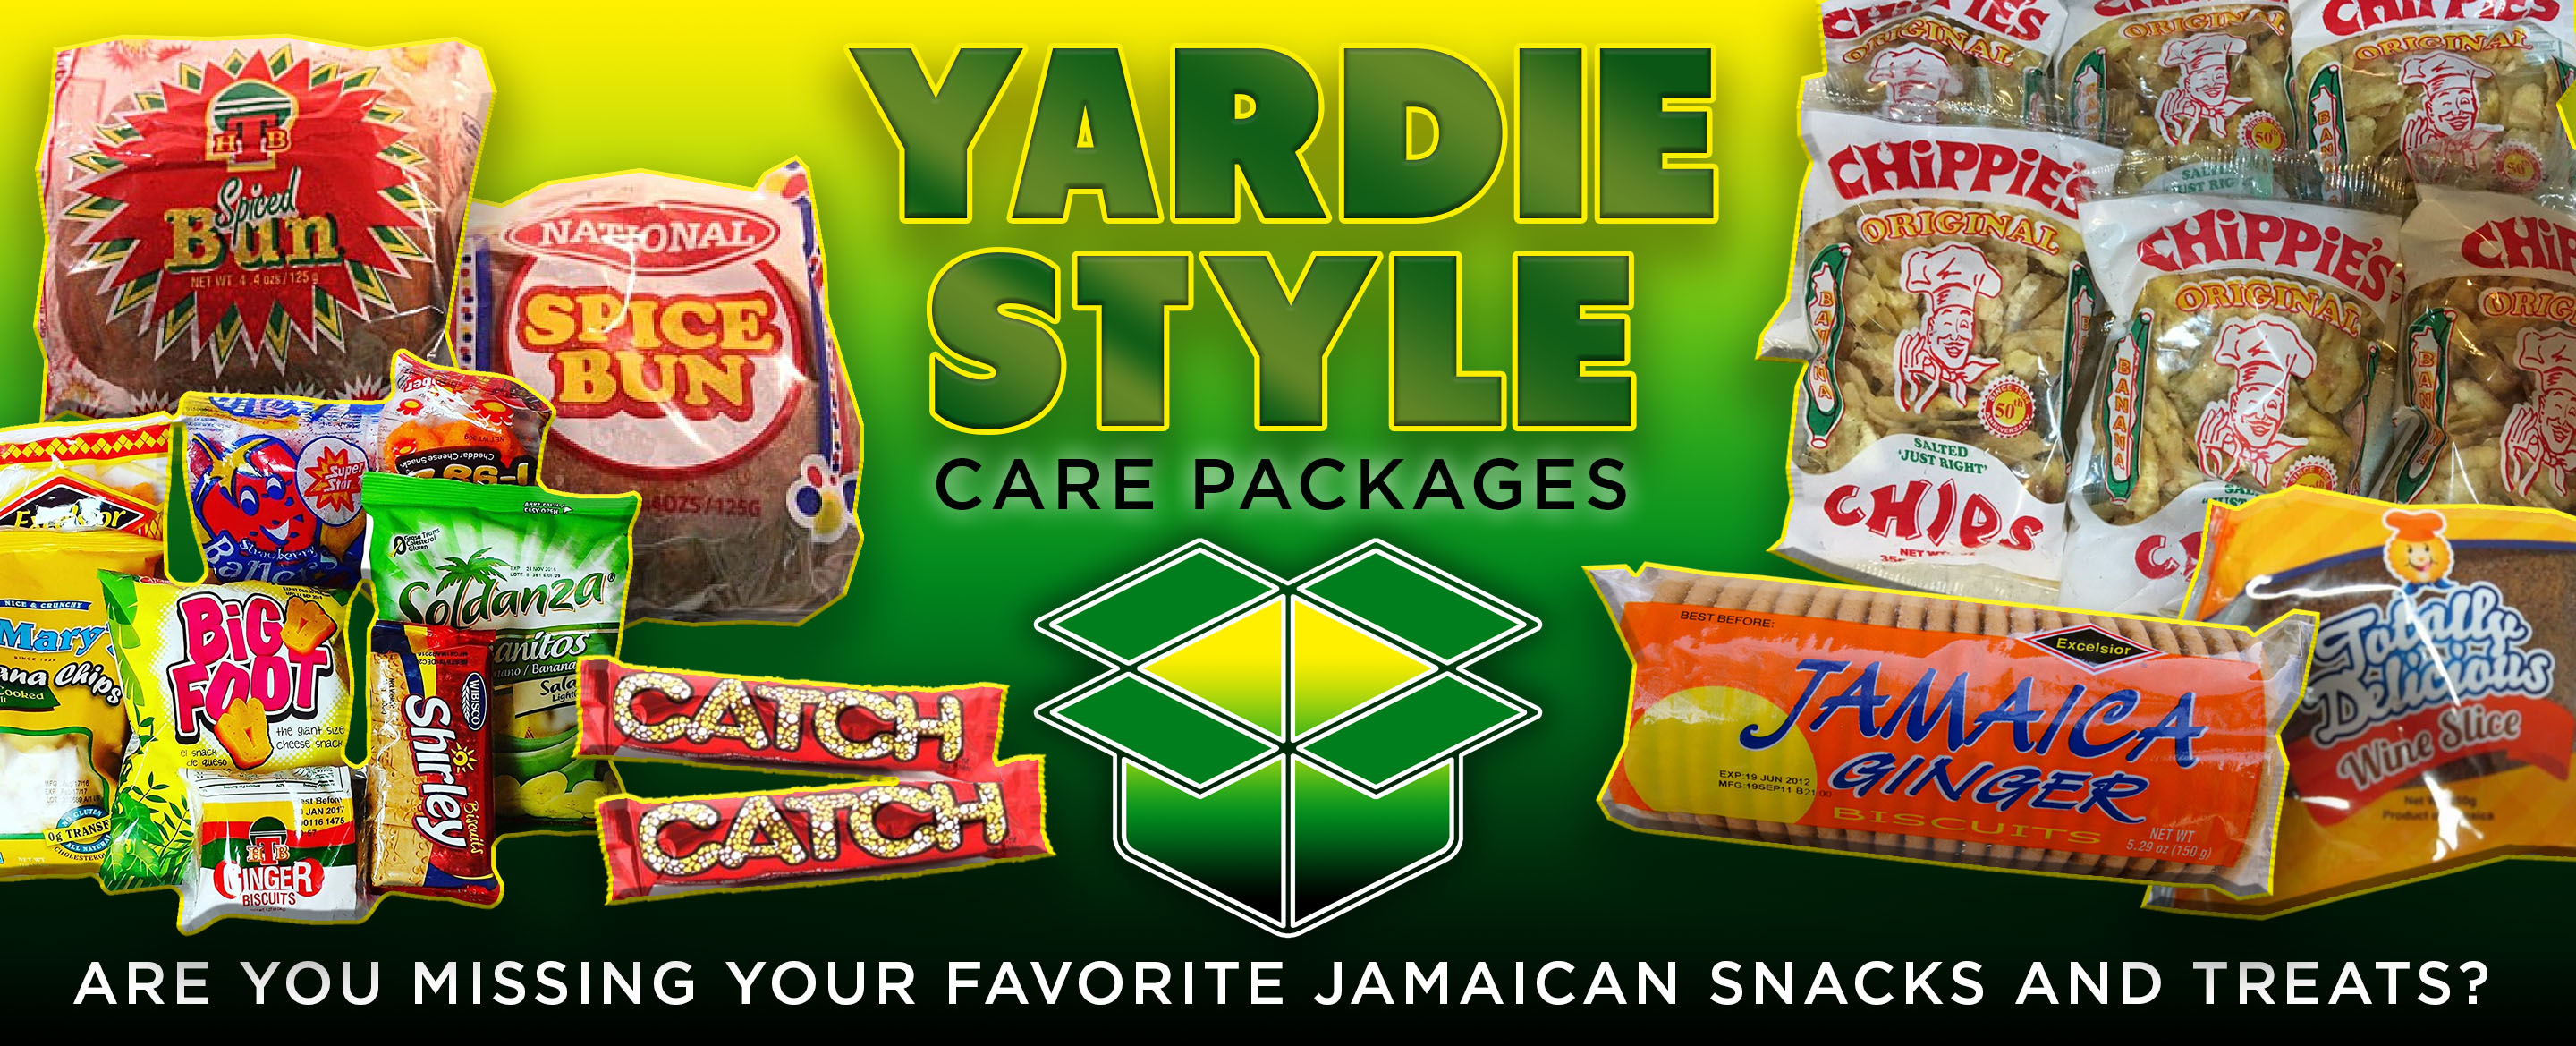 Yardie Style Care Packages Get Your Jamaican Snacks